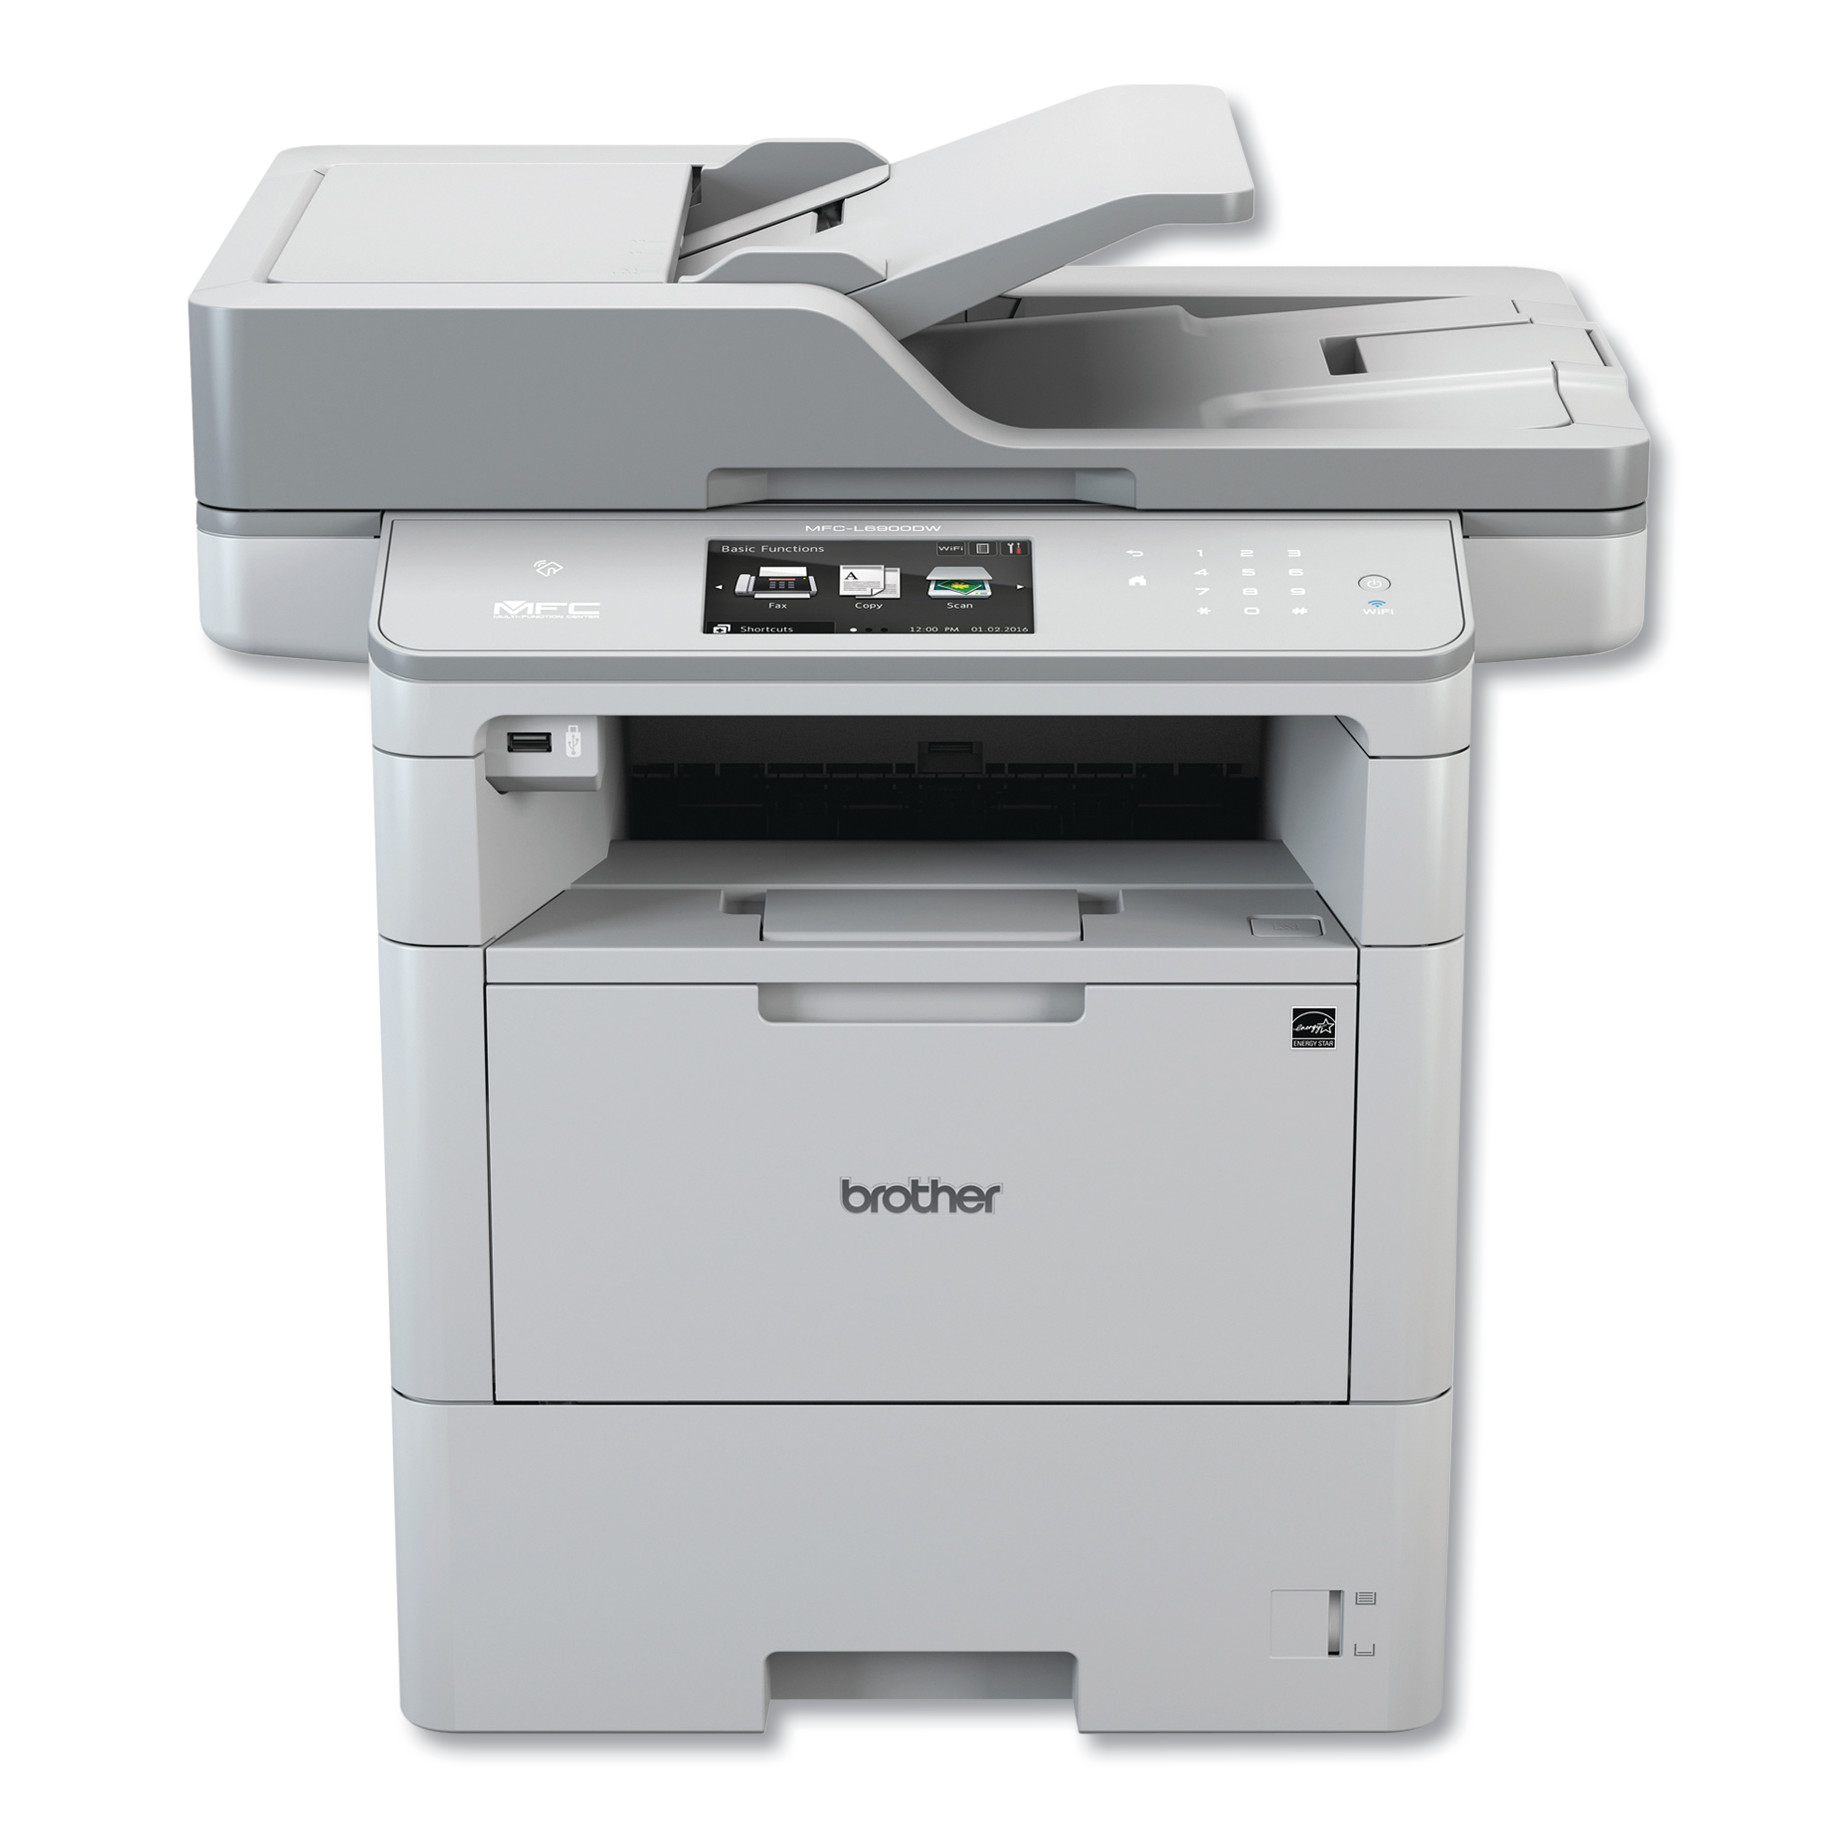 Mono-Laser Printer MFC-L6900DW, Copy/Fax/Print/Scan